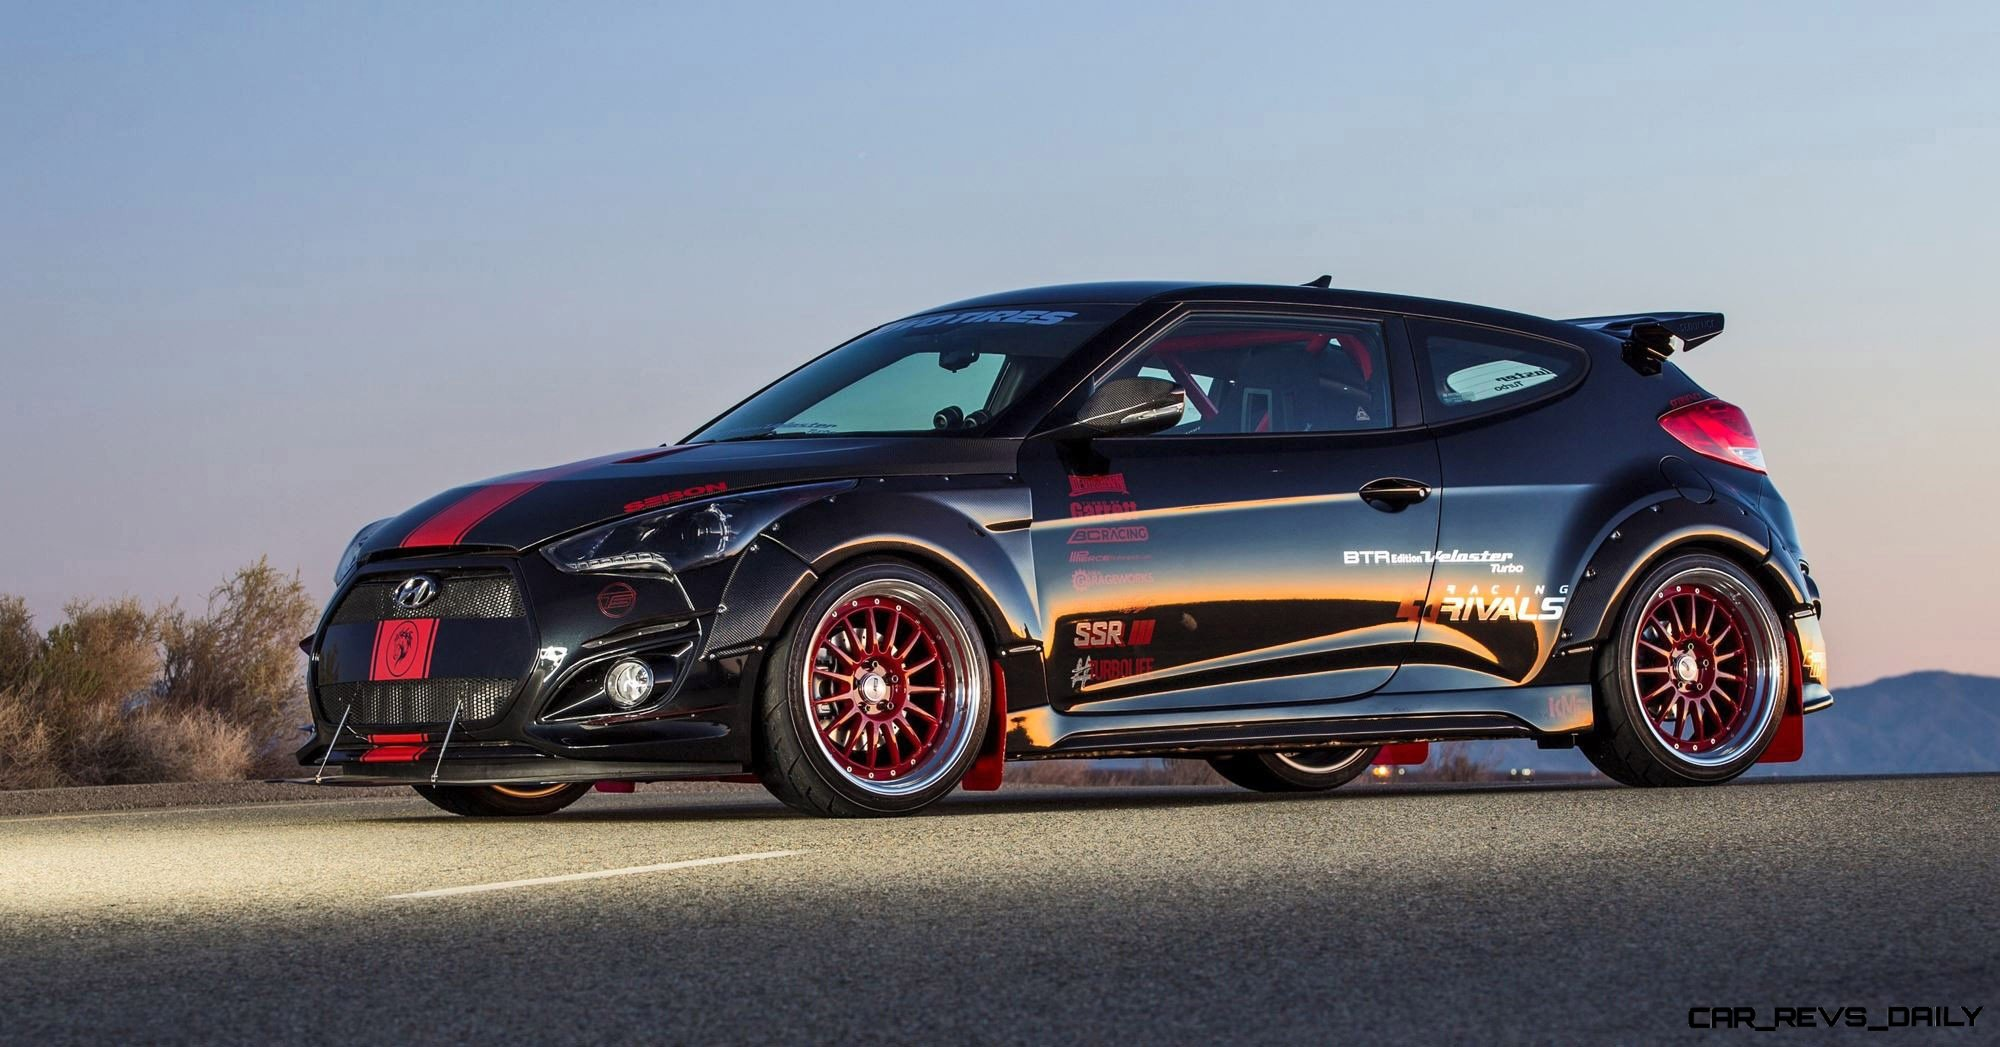 BTR Veloster Turbo